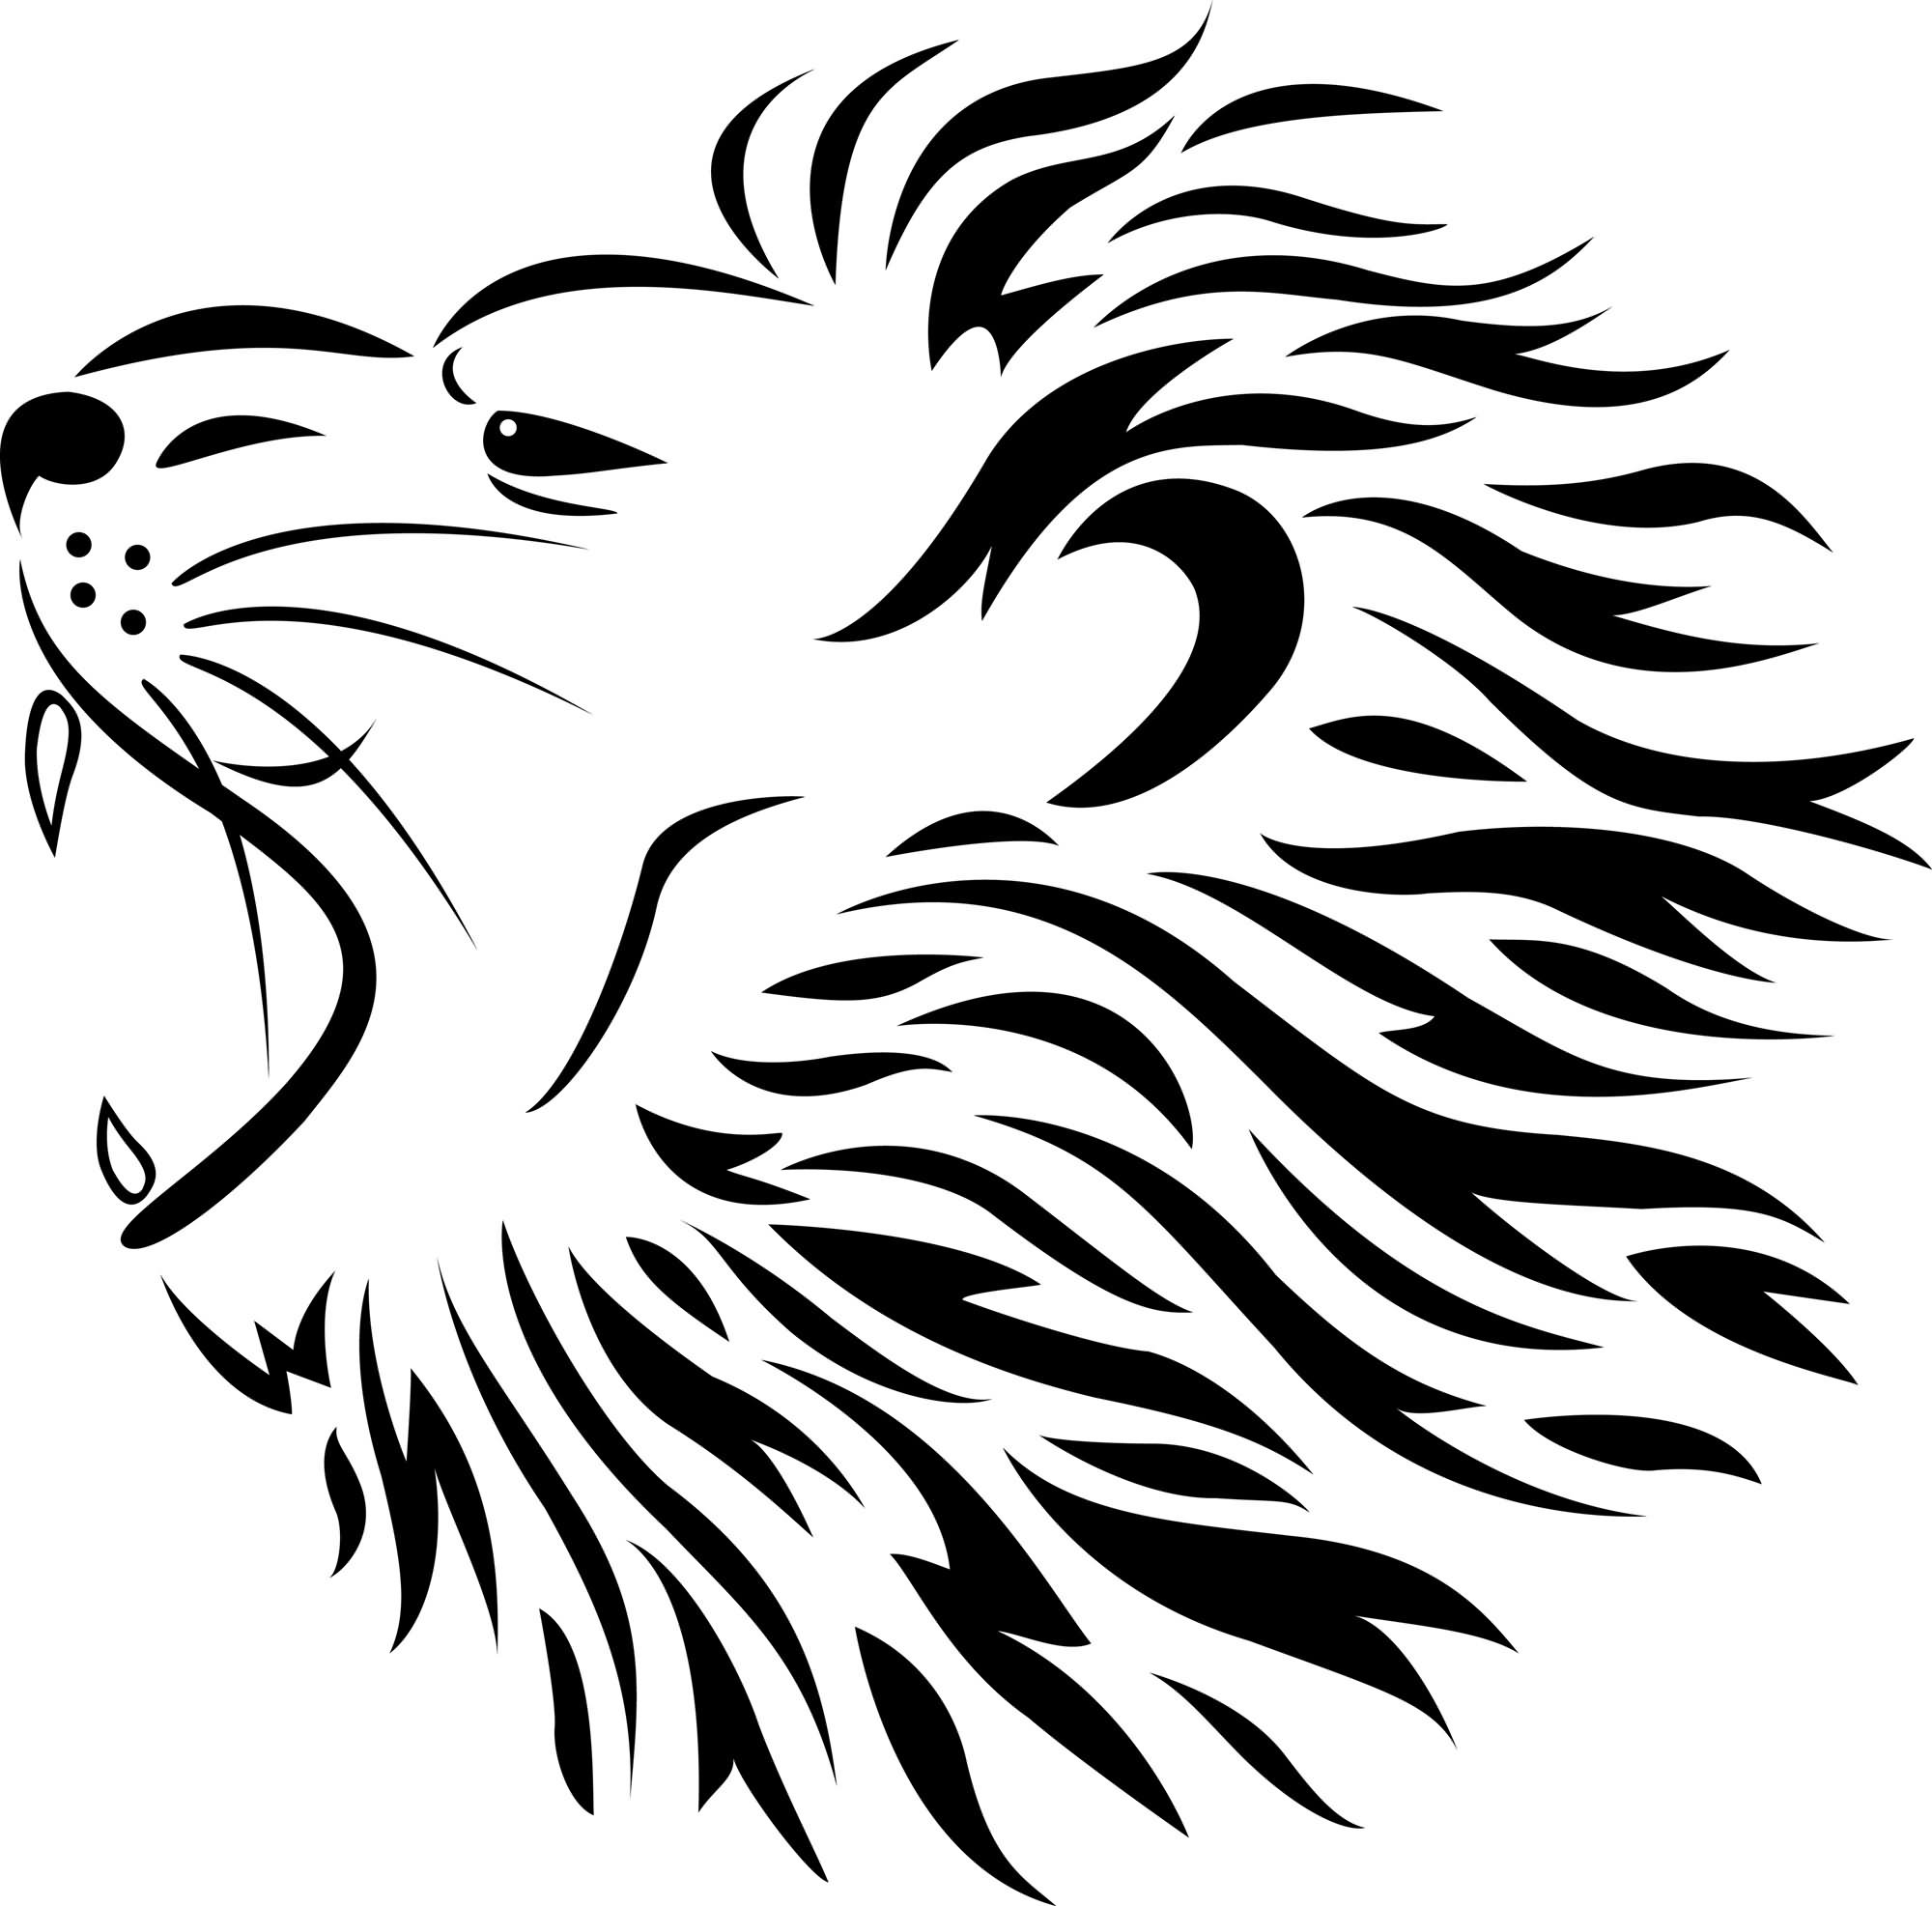 Roaring Lion Clip Art Black And White 82 Famous Lion Tattoo Design And Sketches